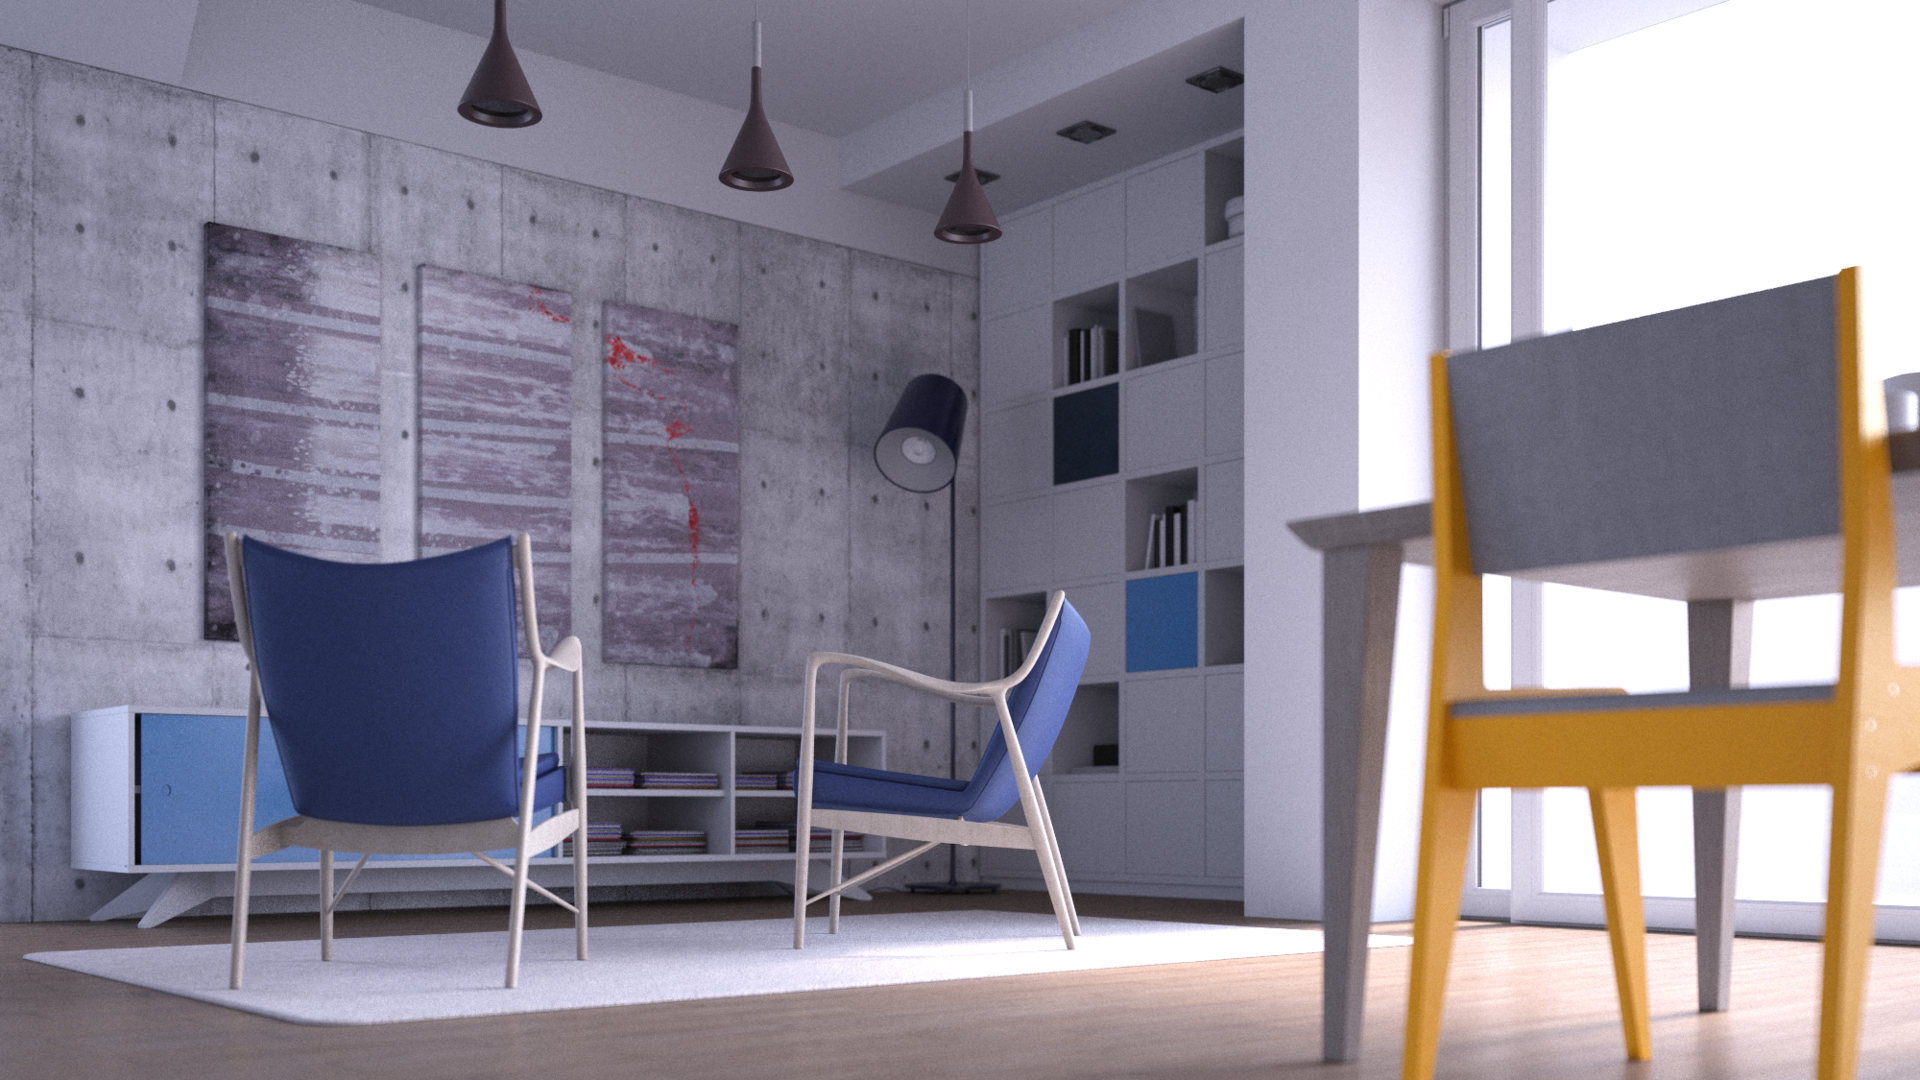 How To Light And Render Interiors With V Ray For Cinema 4d Chaos Group